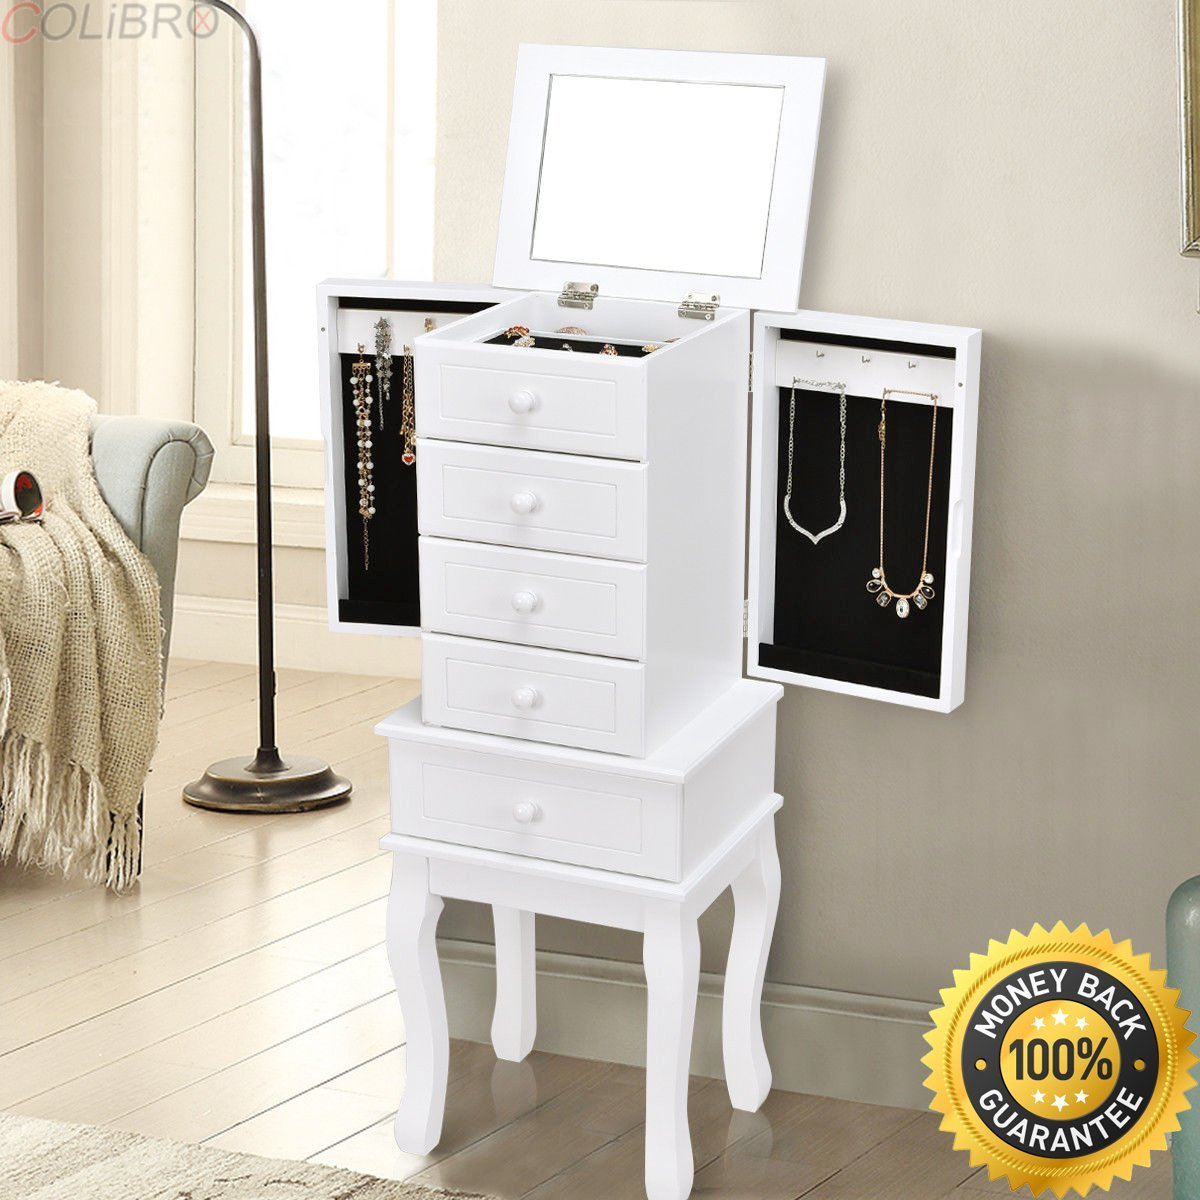 COLIBROX--Jewelry Cabinet Armoire Storage Chest Stand Organizer Wood Free Stand Christmas. armoire jewelry cabinet box storage chest stand organizer. walmart warehouse jobs in bethlehem pa.